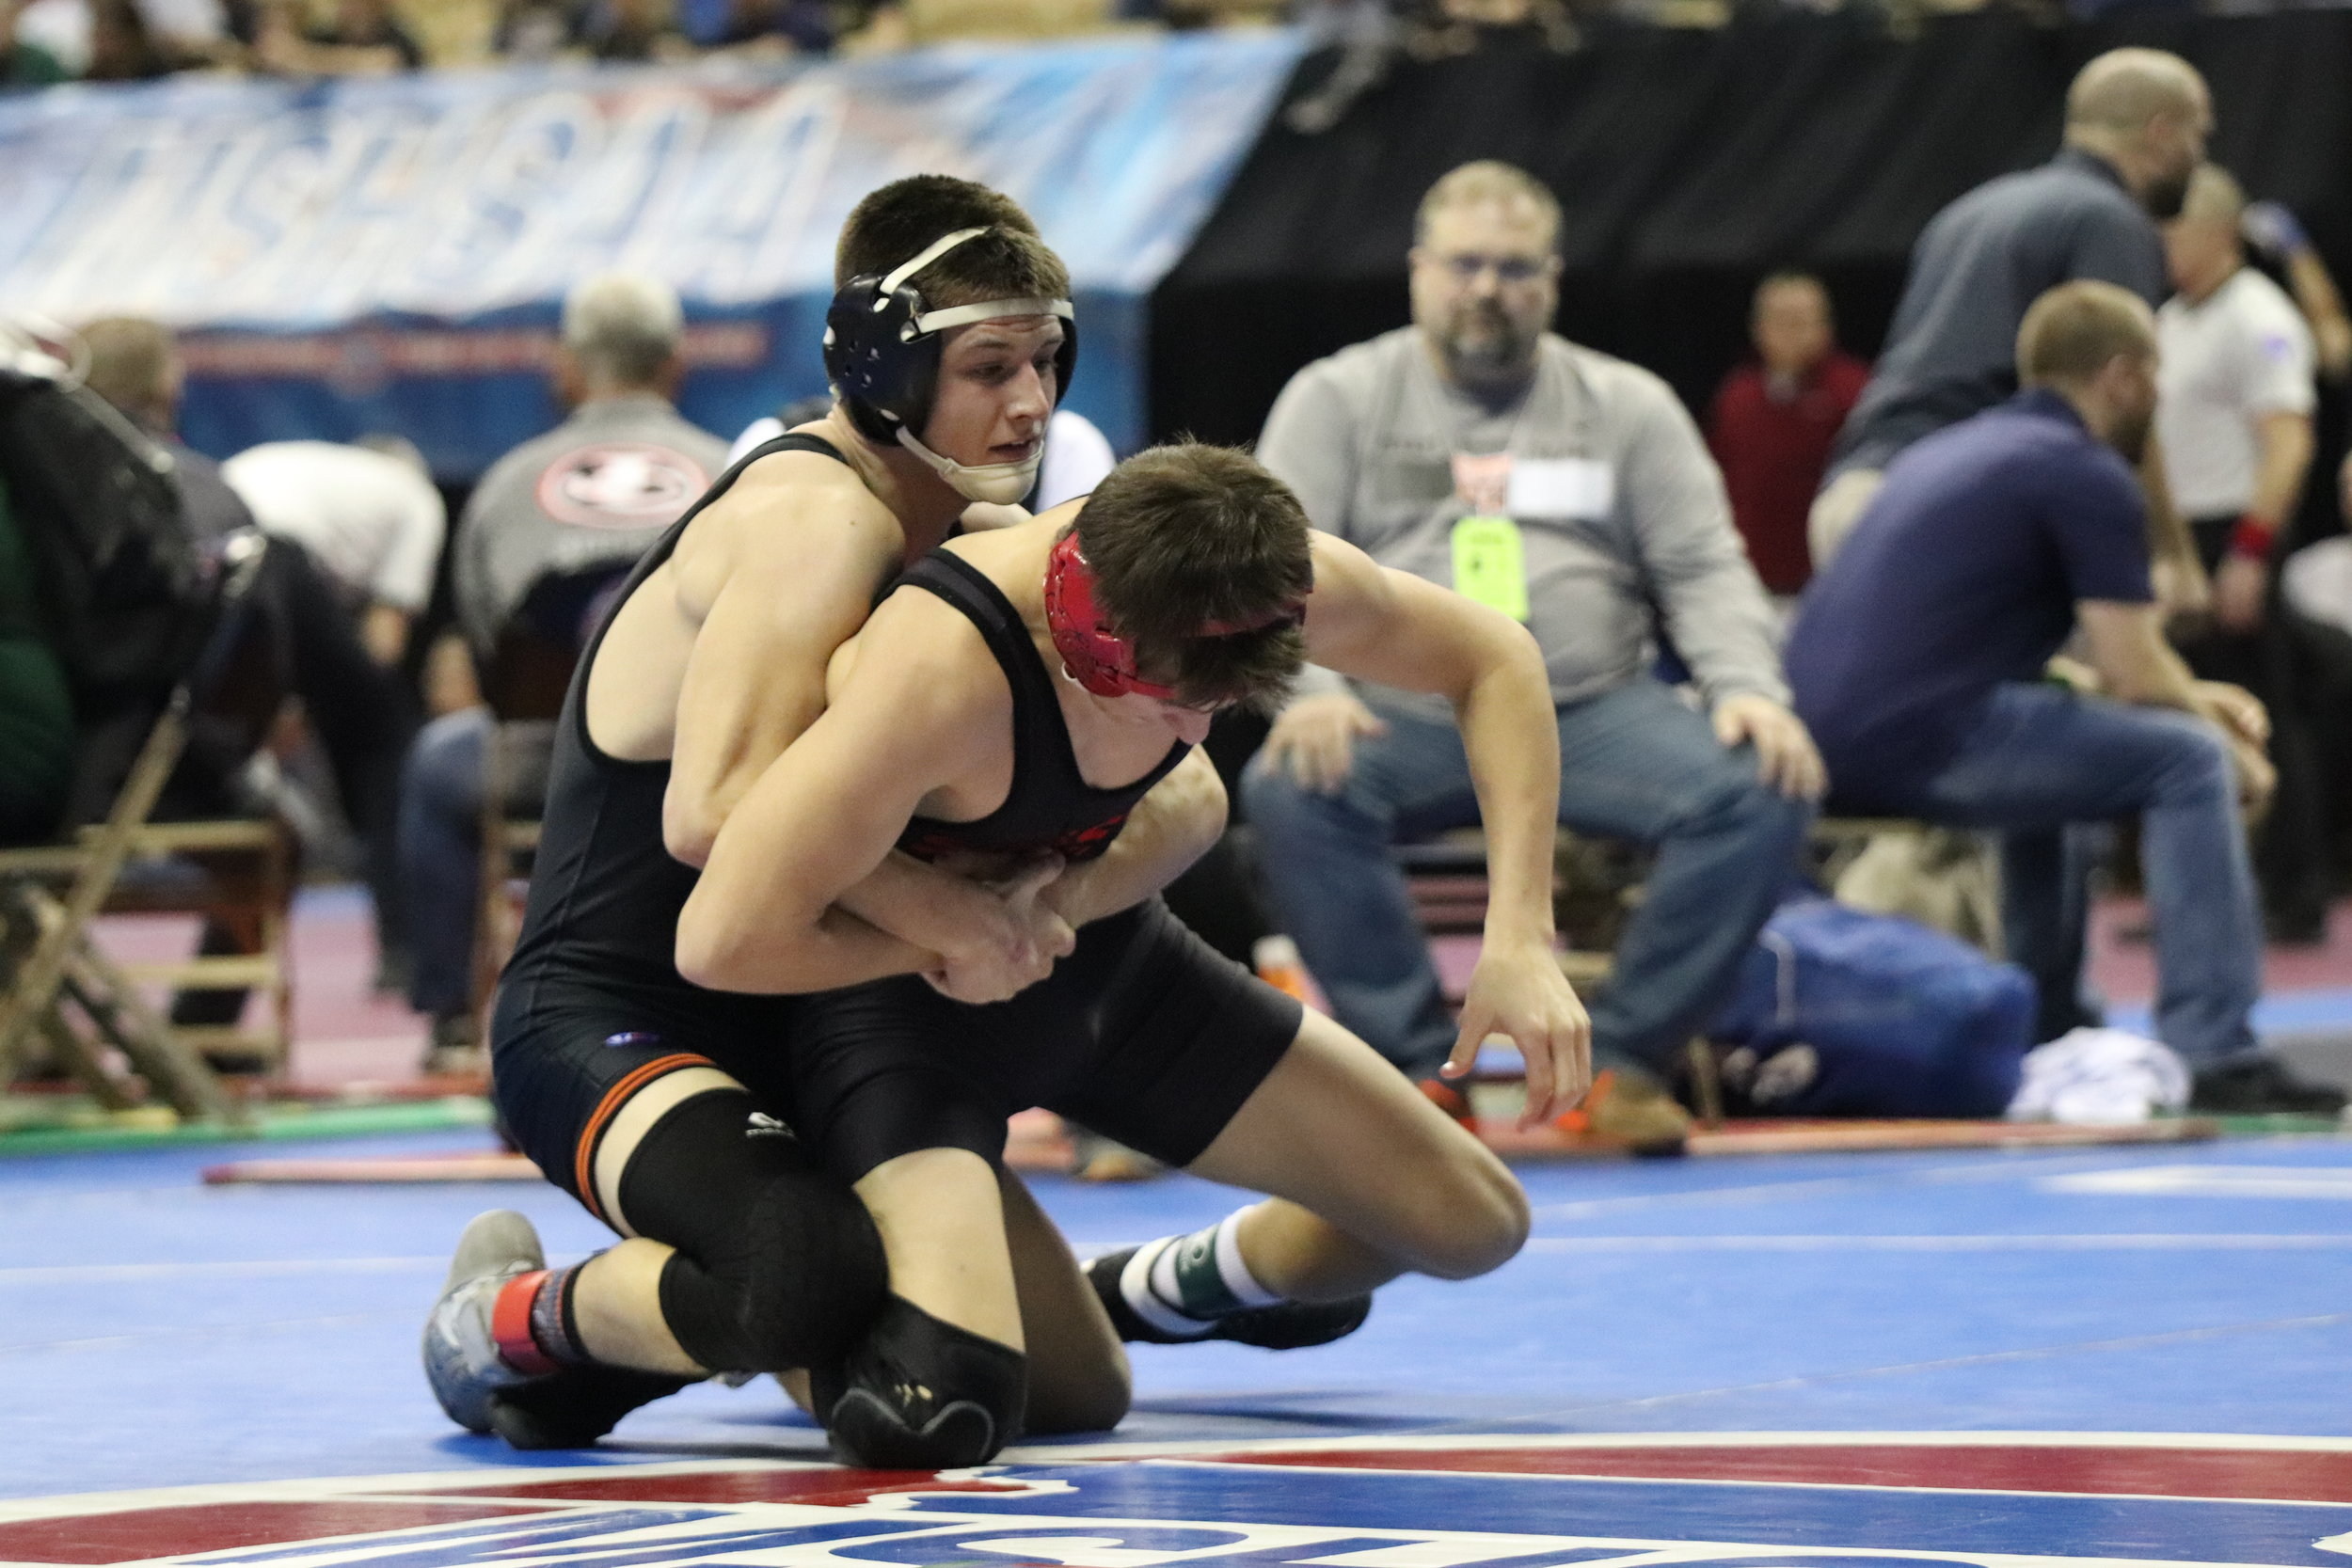 Platte County's Nick Filger picked up a 10-5 win against Sikeston's Josh Rishton (right) during the first round of the Class 3 MSHSAA Wrestling Championships on Thursday, Feb. 14 in Columbia, Mo.